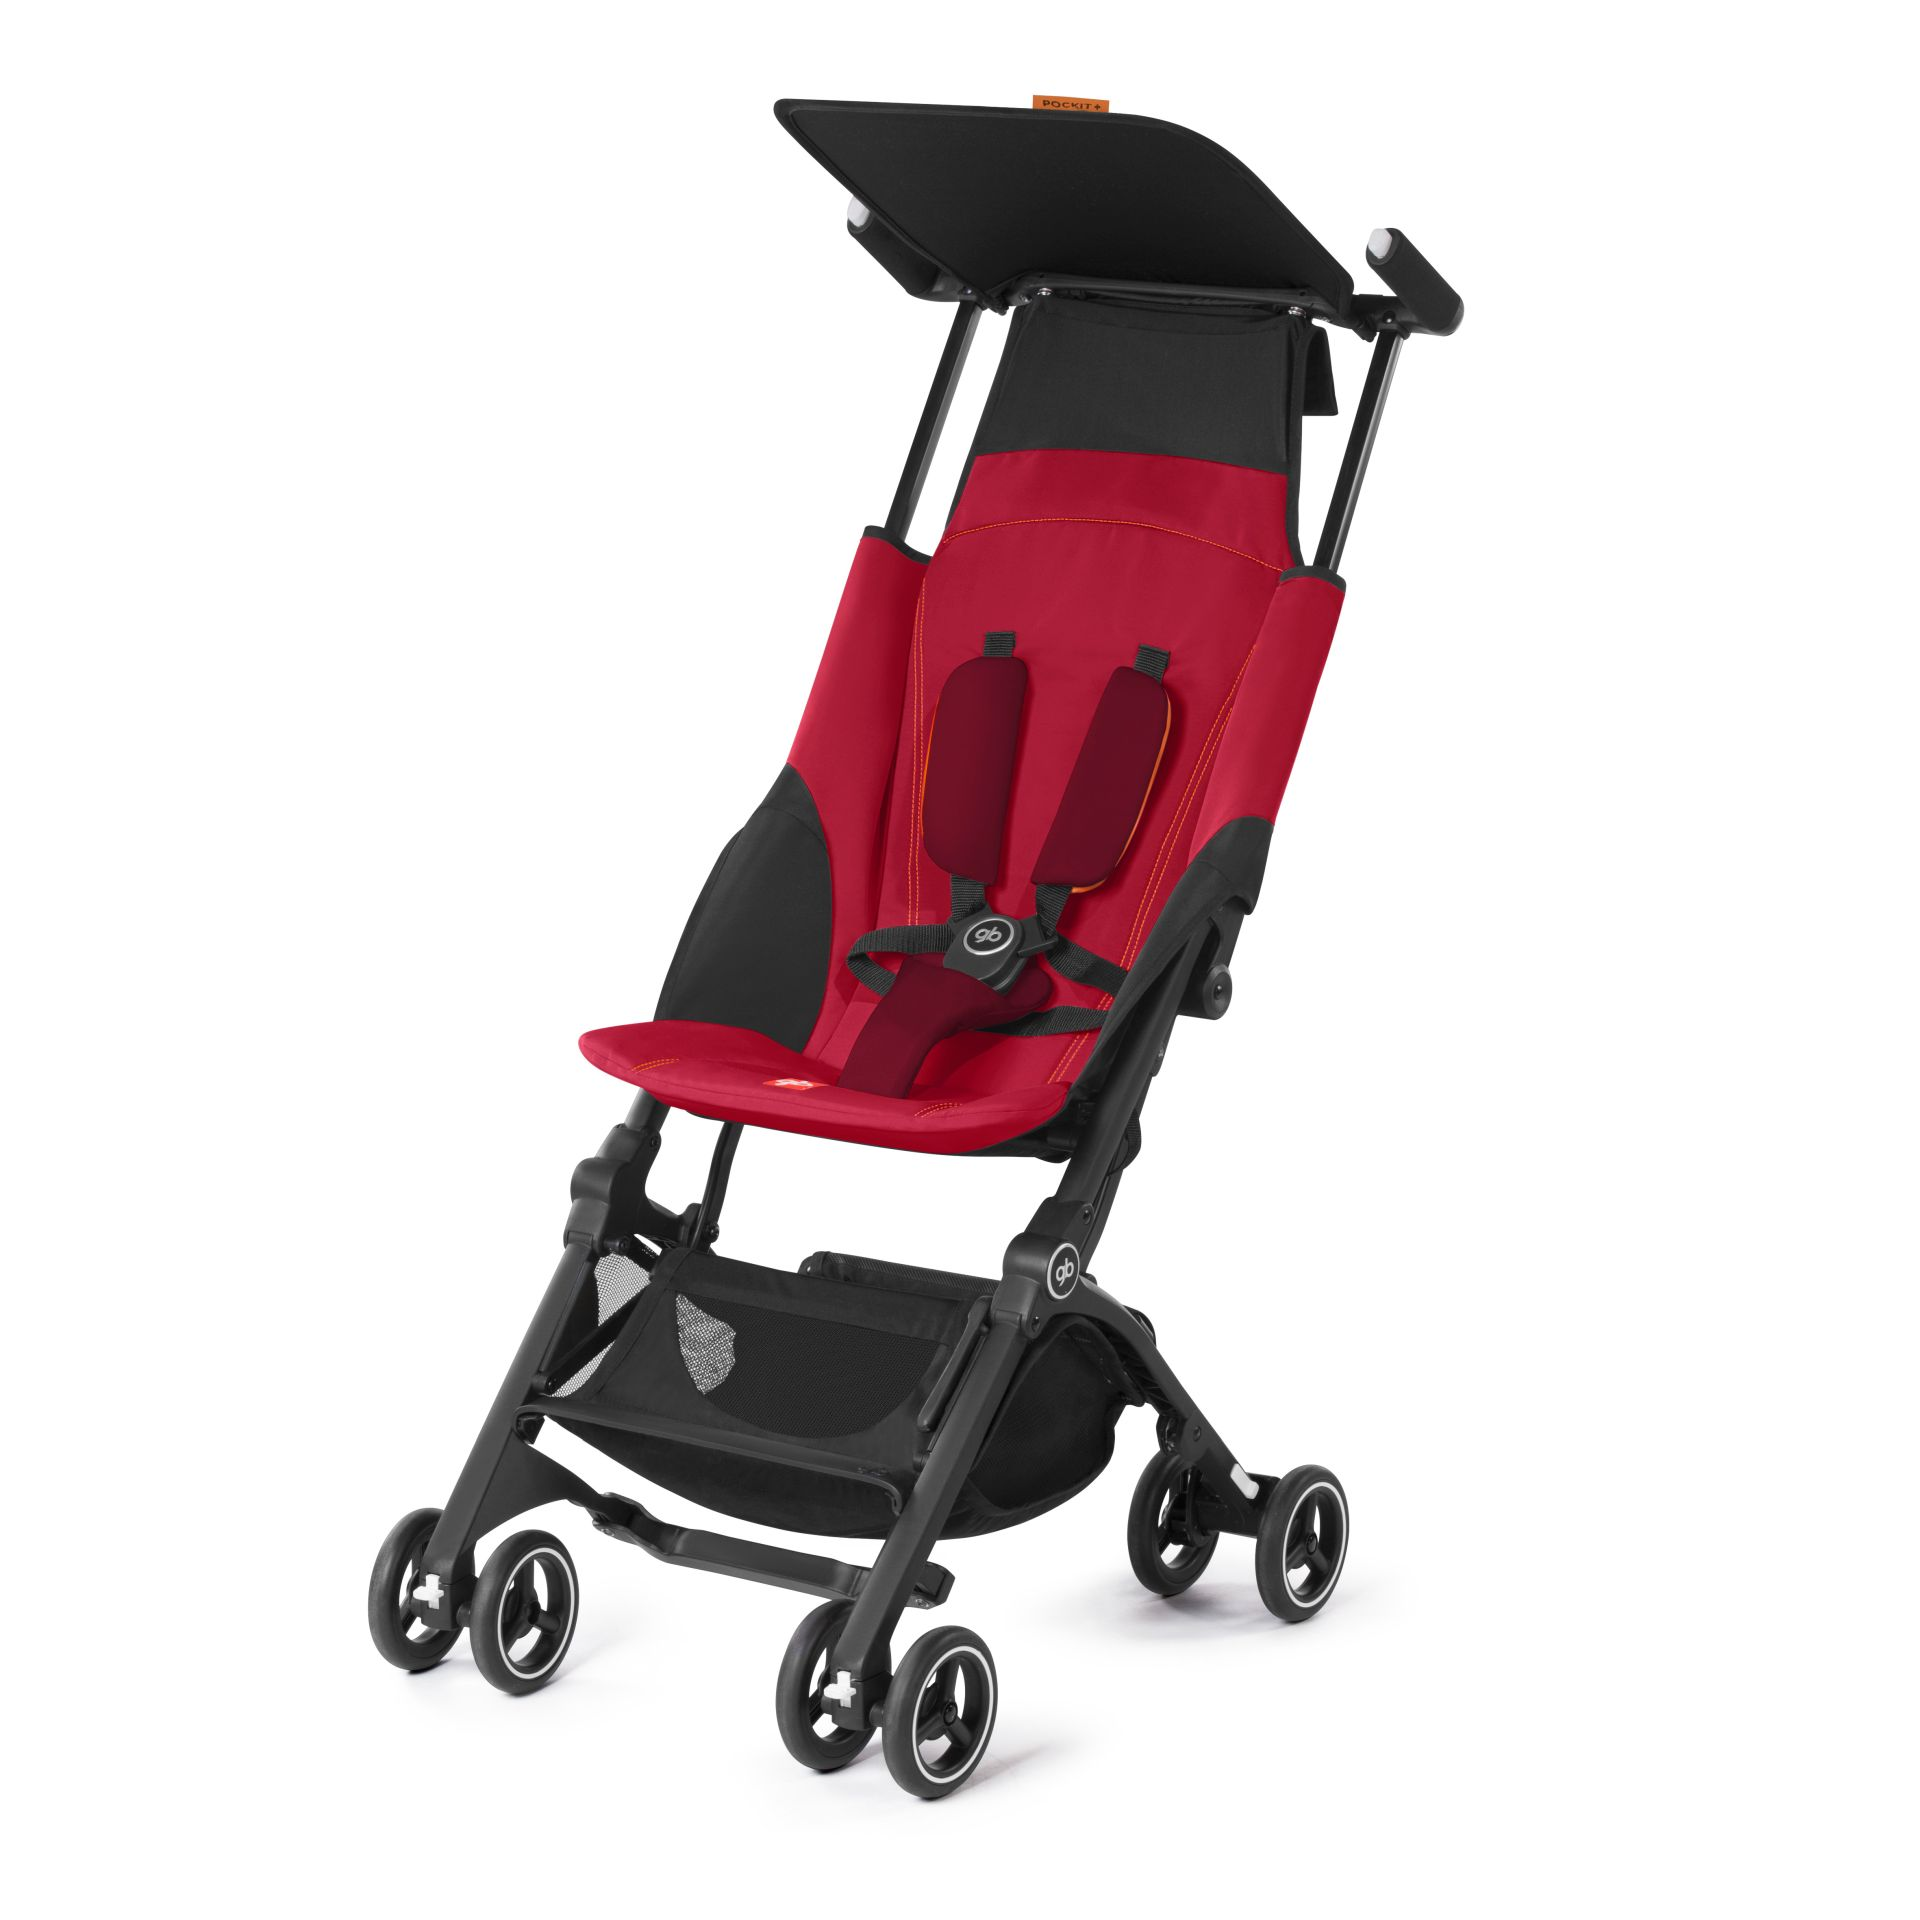 Silla de paseo Pockit gb by Cybex Dragonfire Red red